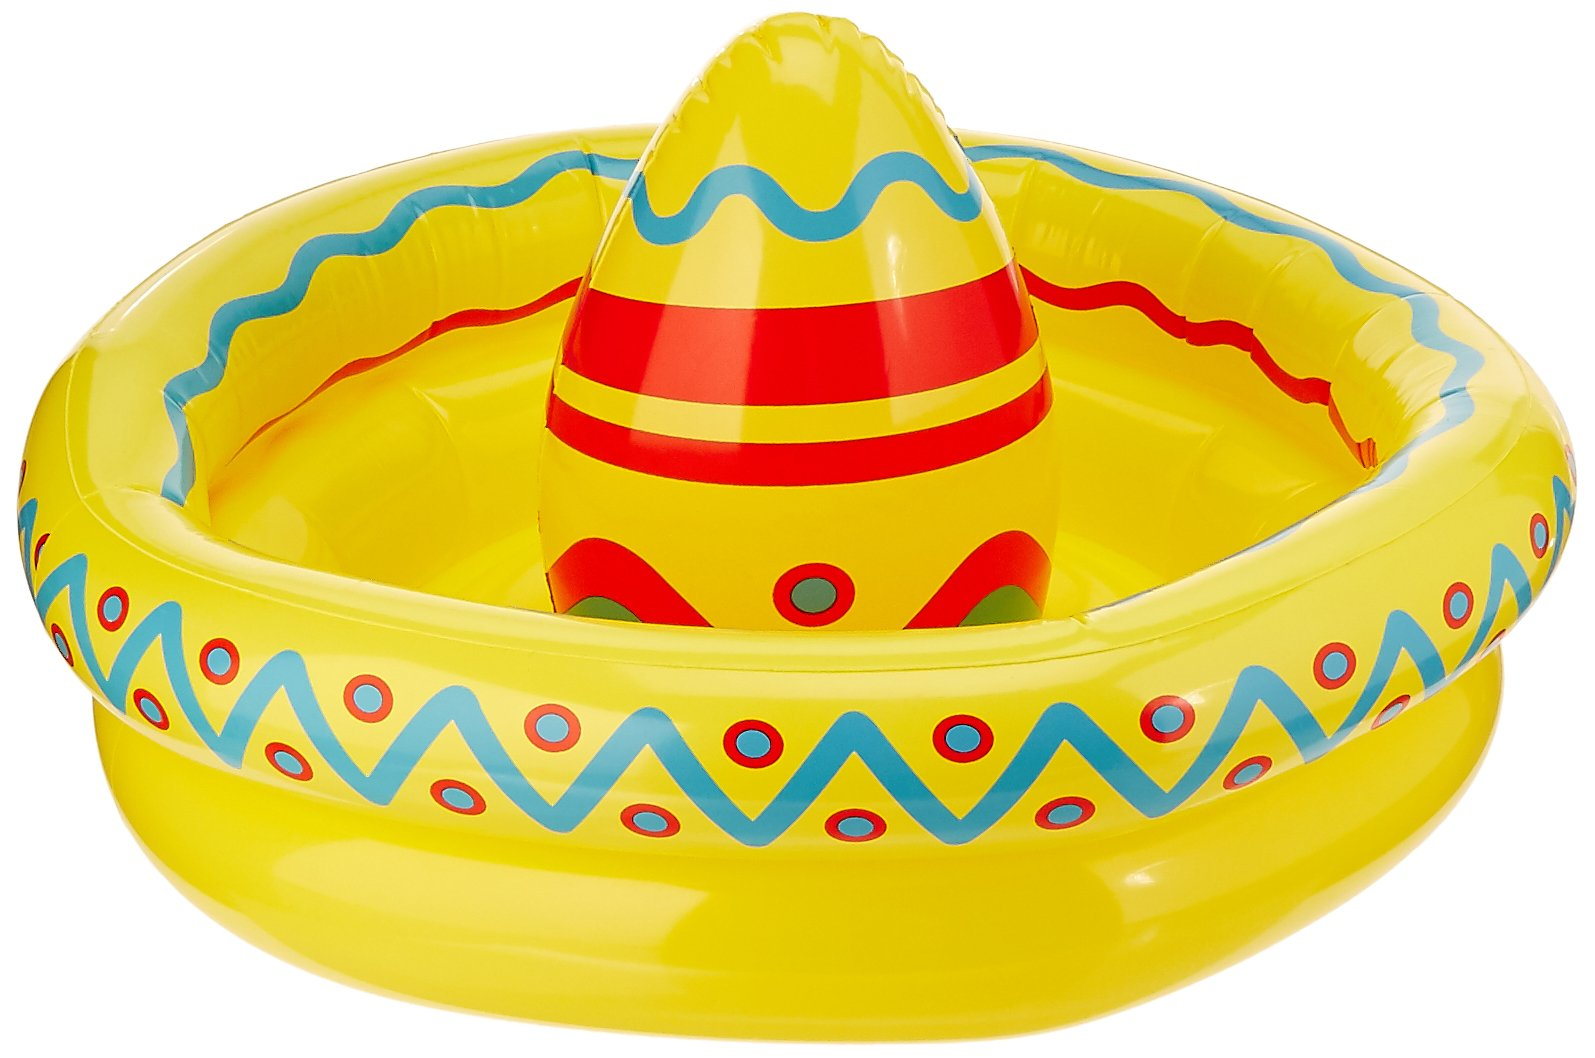 Beistle Inflatable Sombrero Cooler Party Accessory 18-Inch by 12-Inch (1 count), Multicolor, One Size by Beistle